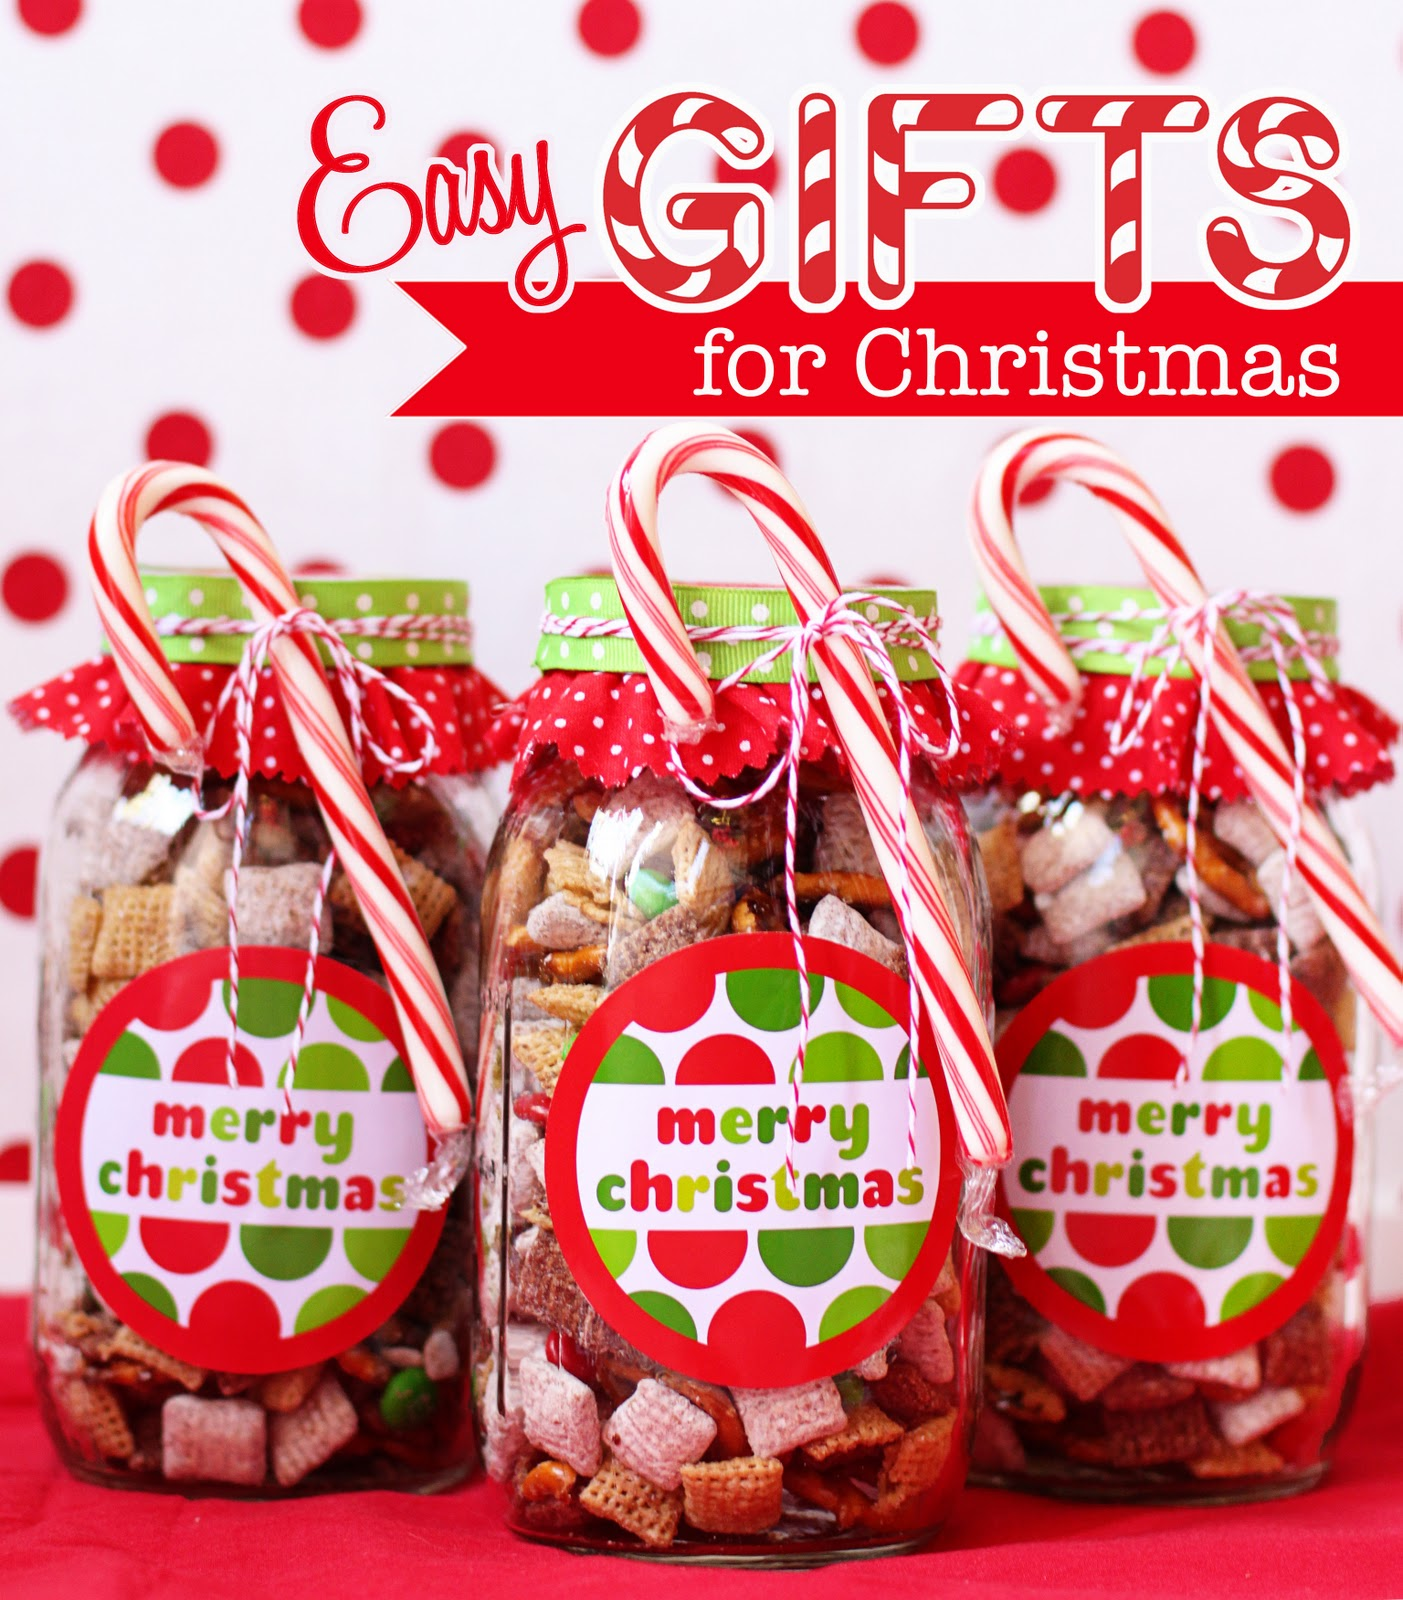 FREE Merry Christmas Tags and Gift Idea Homemade Christmas Gifts Using Photos